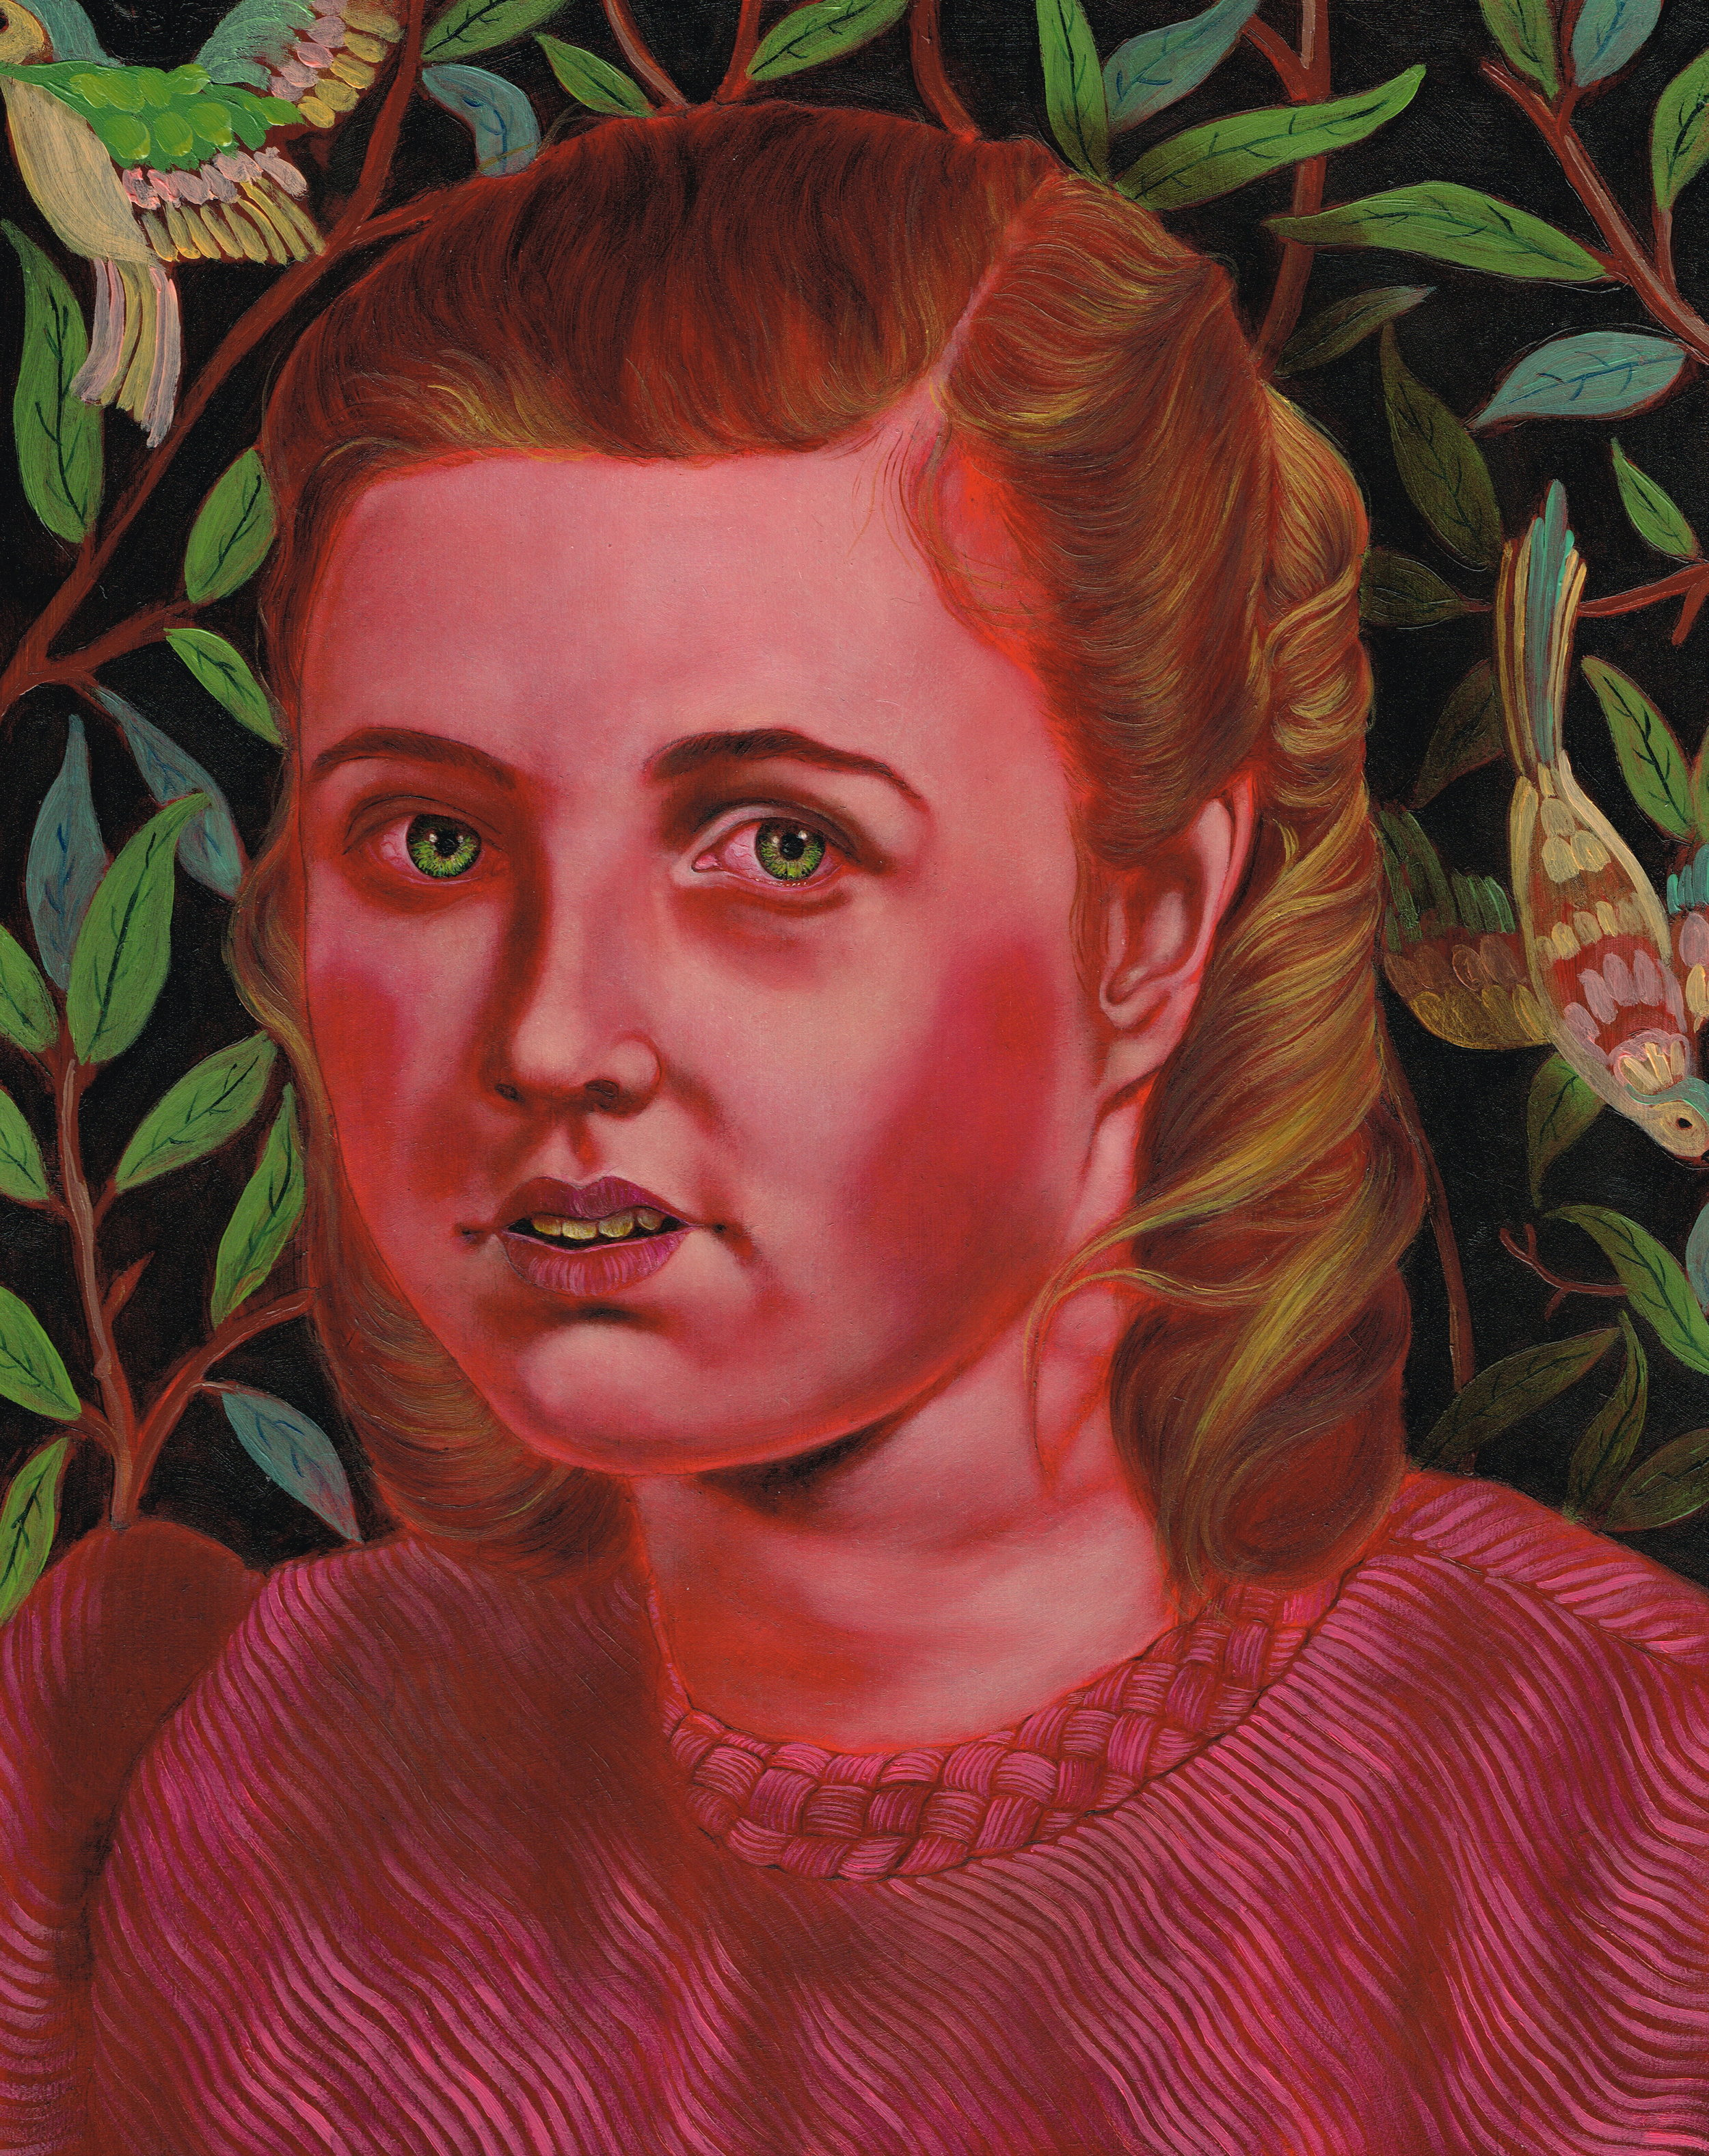 Dana Holst, Patsy, 2012, oil on panel, 10 x 8 inches.